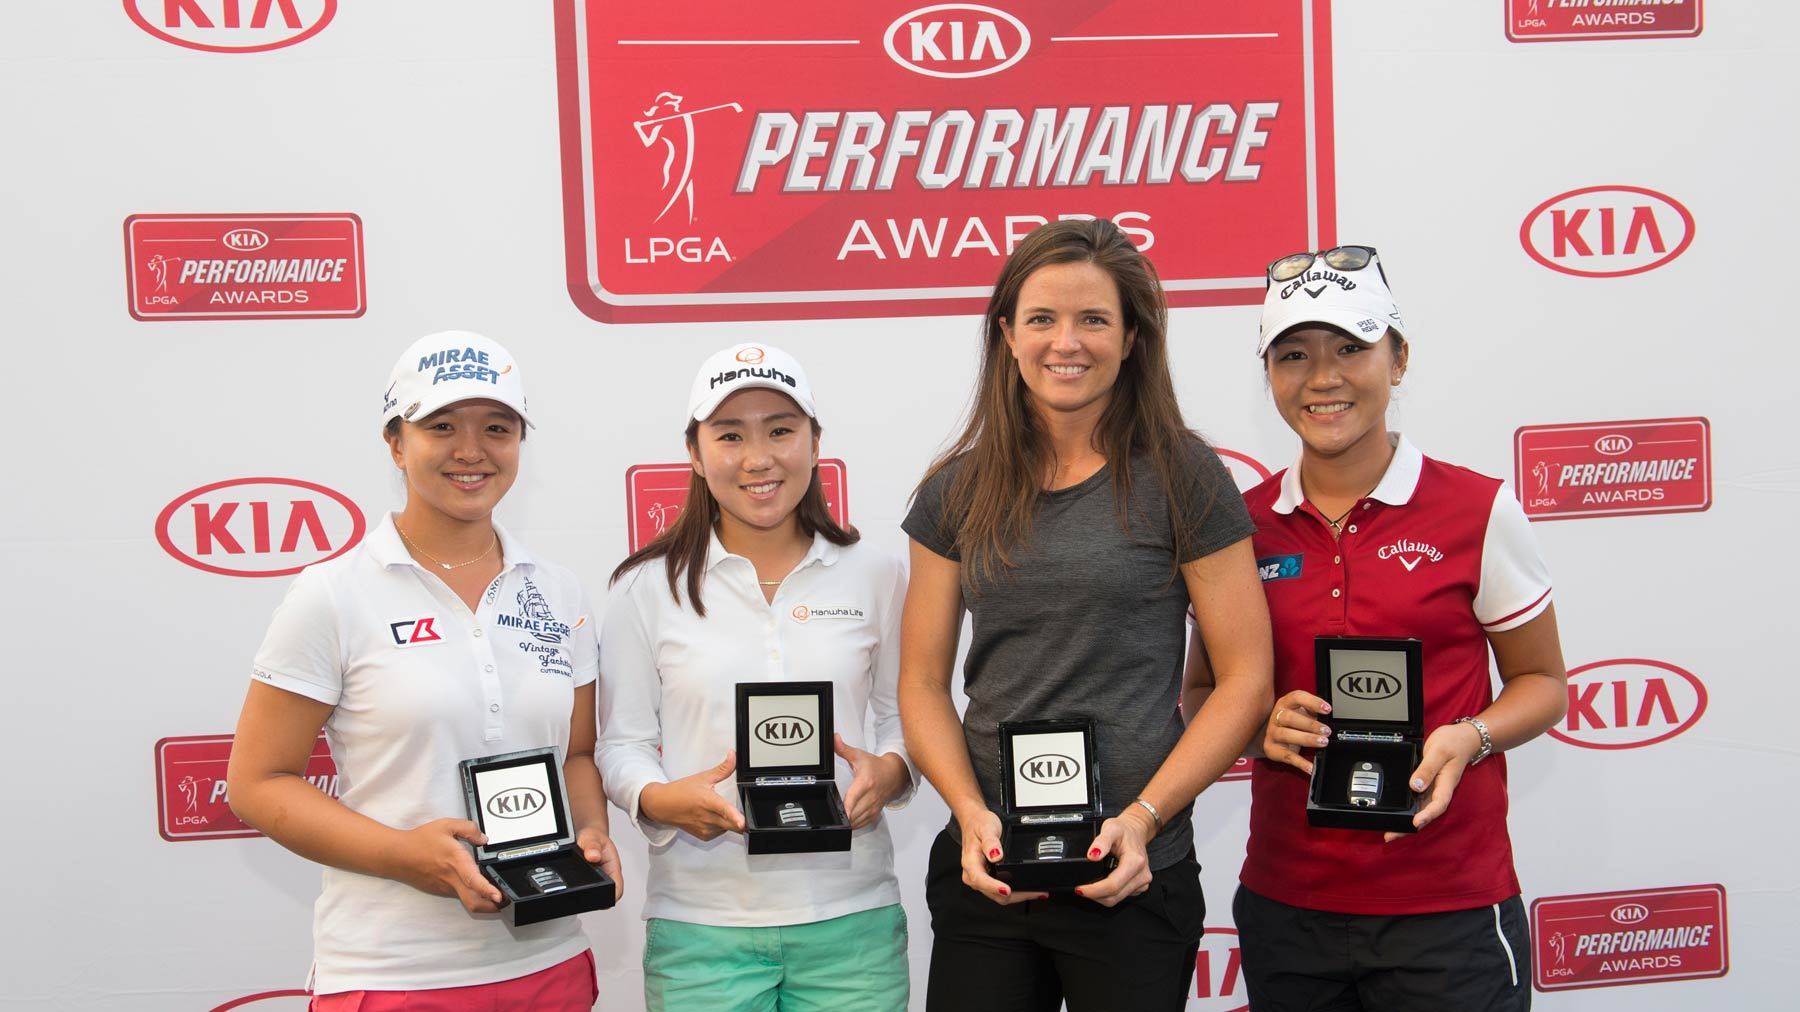 2015 Kia Performance Award Winners - Sei Young Kim, I.K. Kim, Joanna Klatten, and Lydia Ko